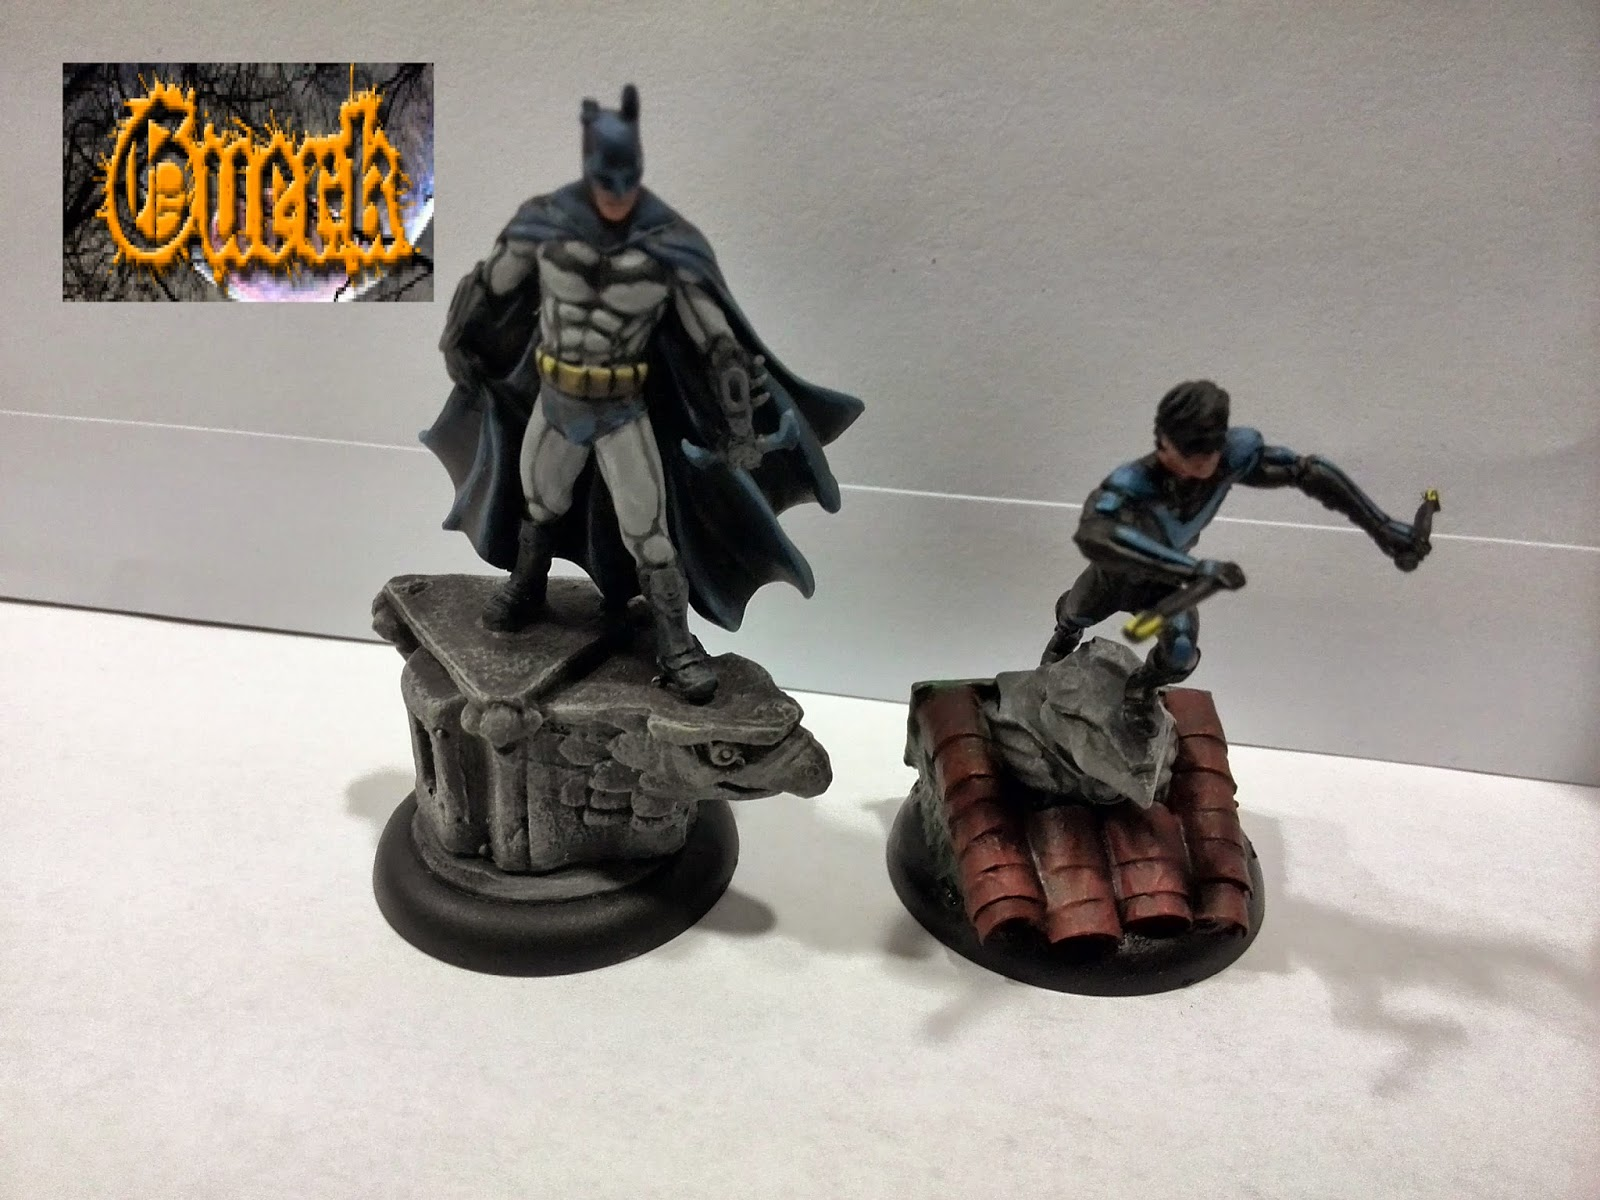 batman-nightwing-pintado-knight model-batman miniature game-batman arkham asylum-nightwing arkham asylum-painted